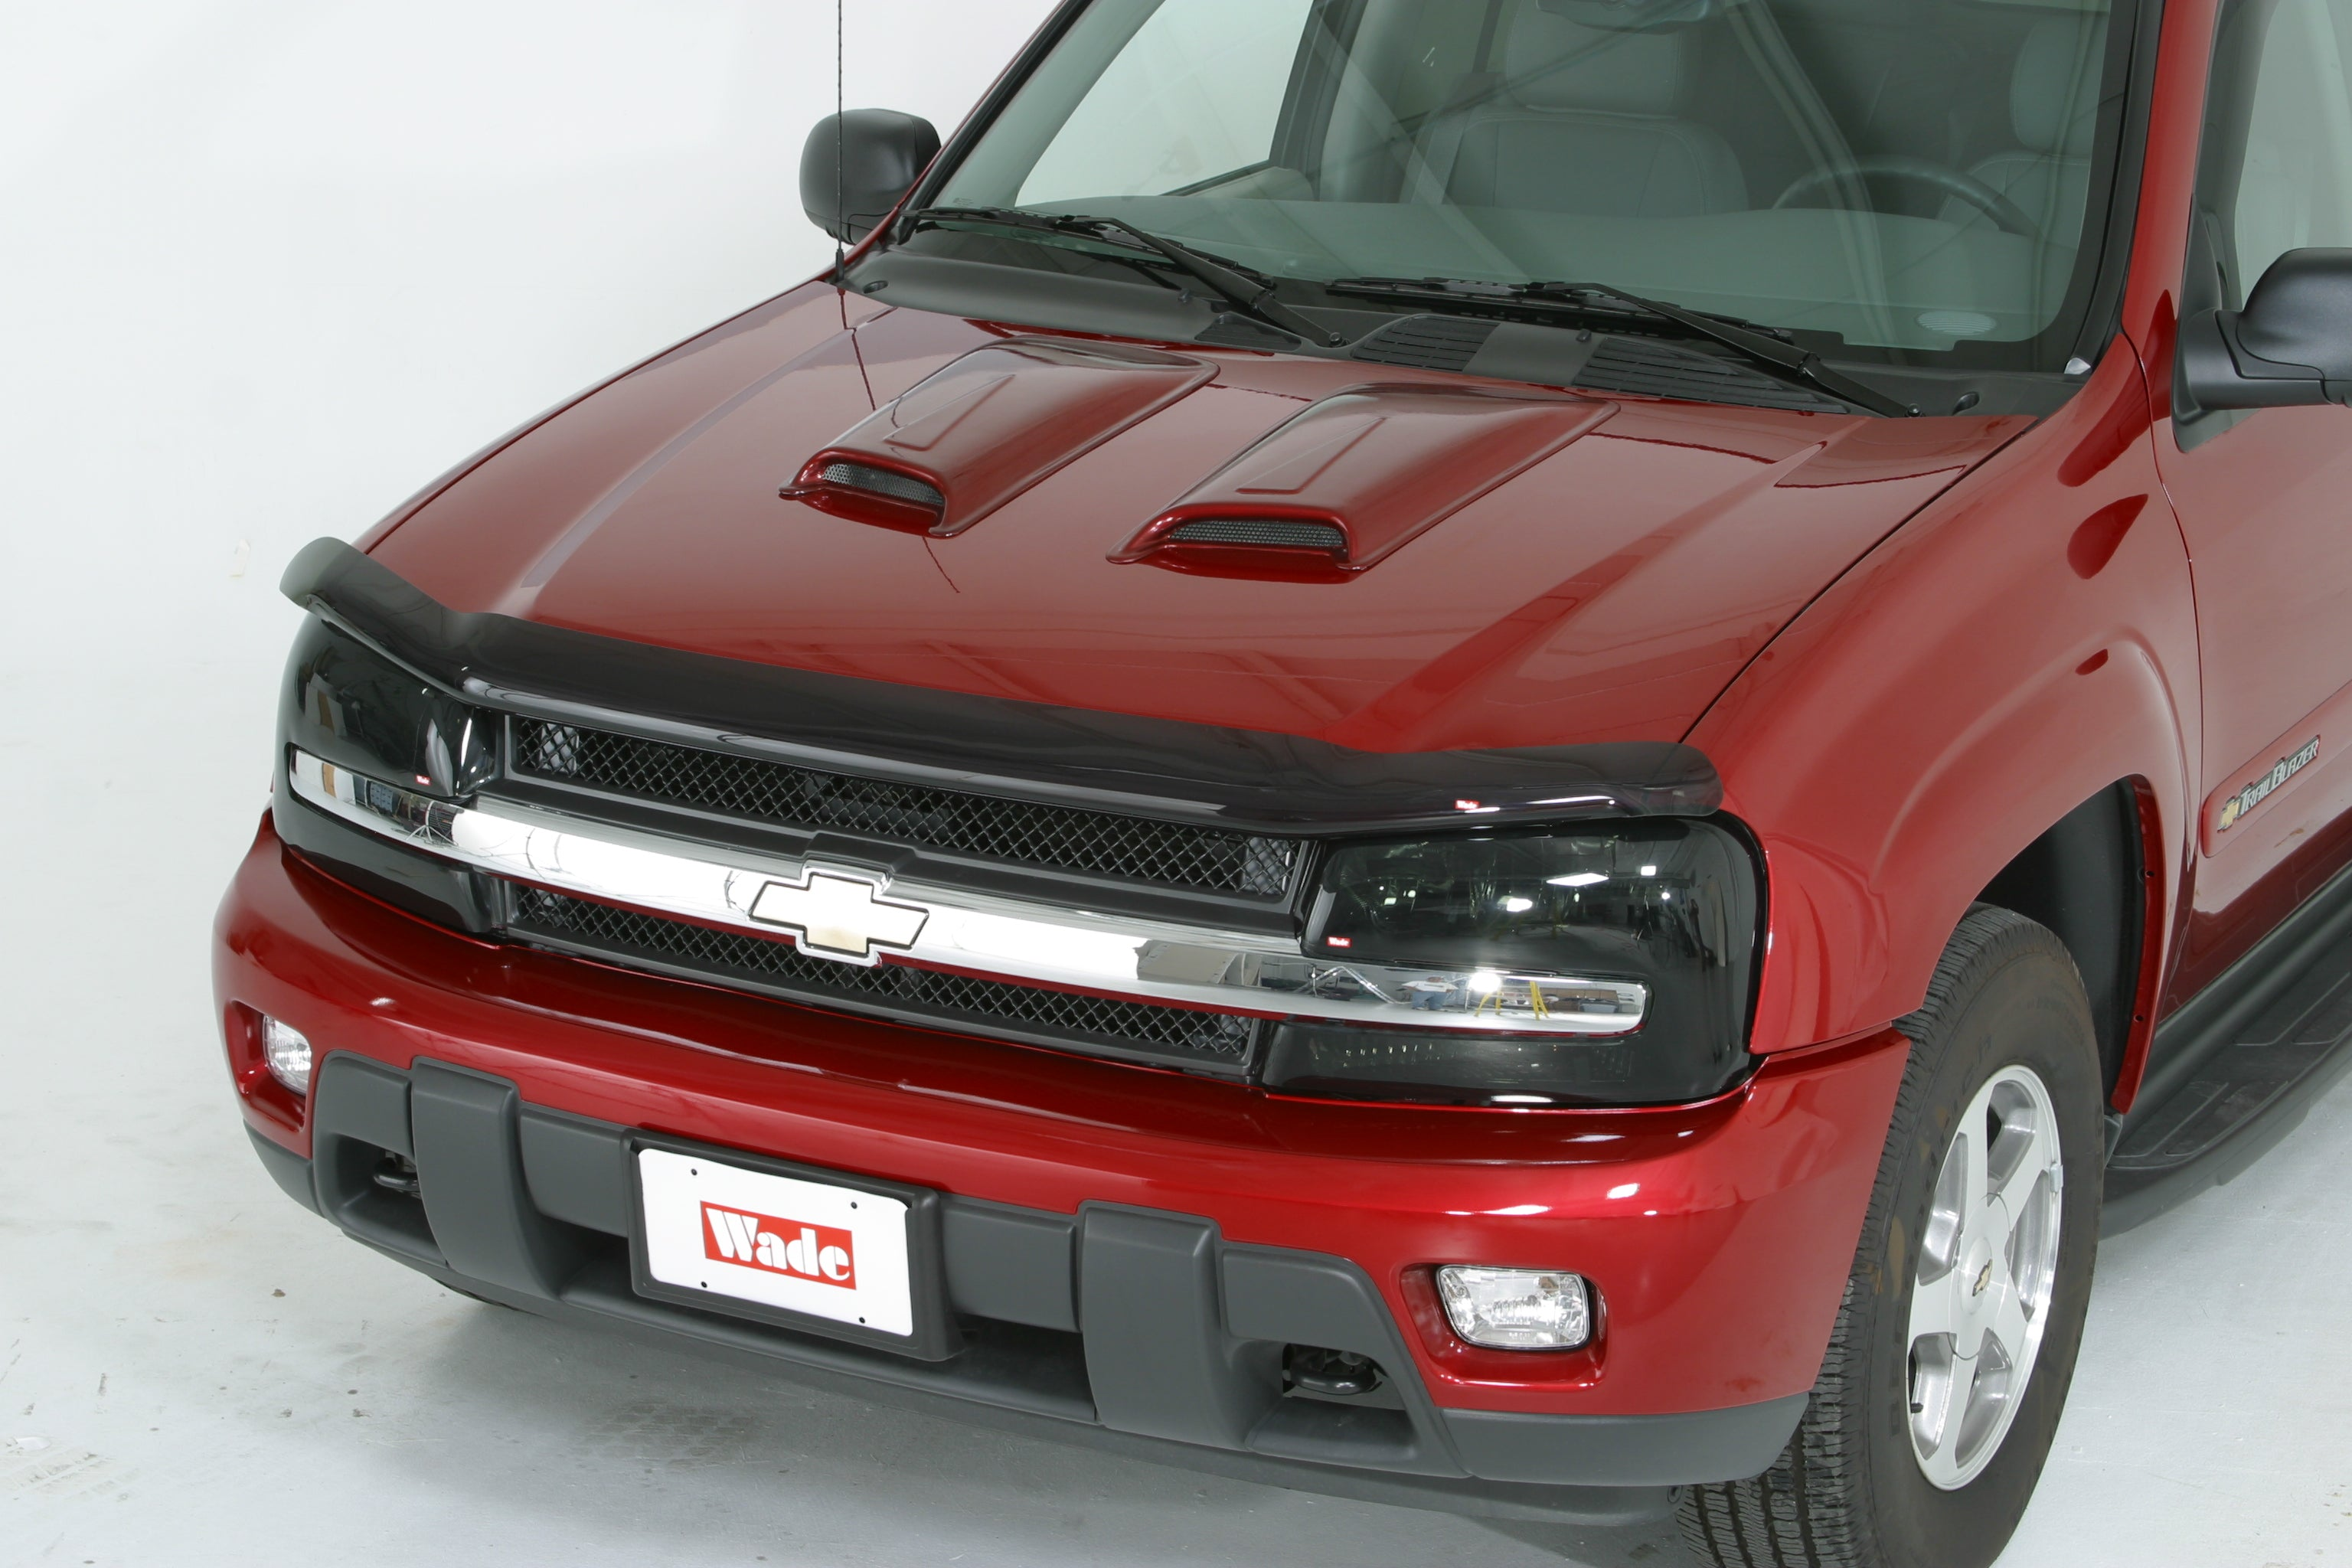 1997 Nissan Pickup 2WD (flush mount) Head Light Covers